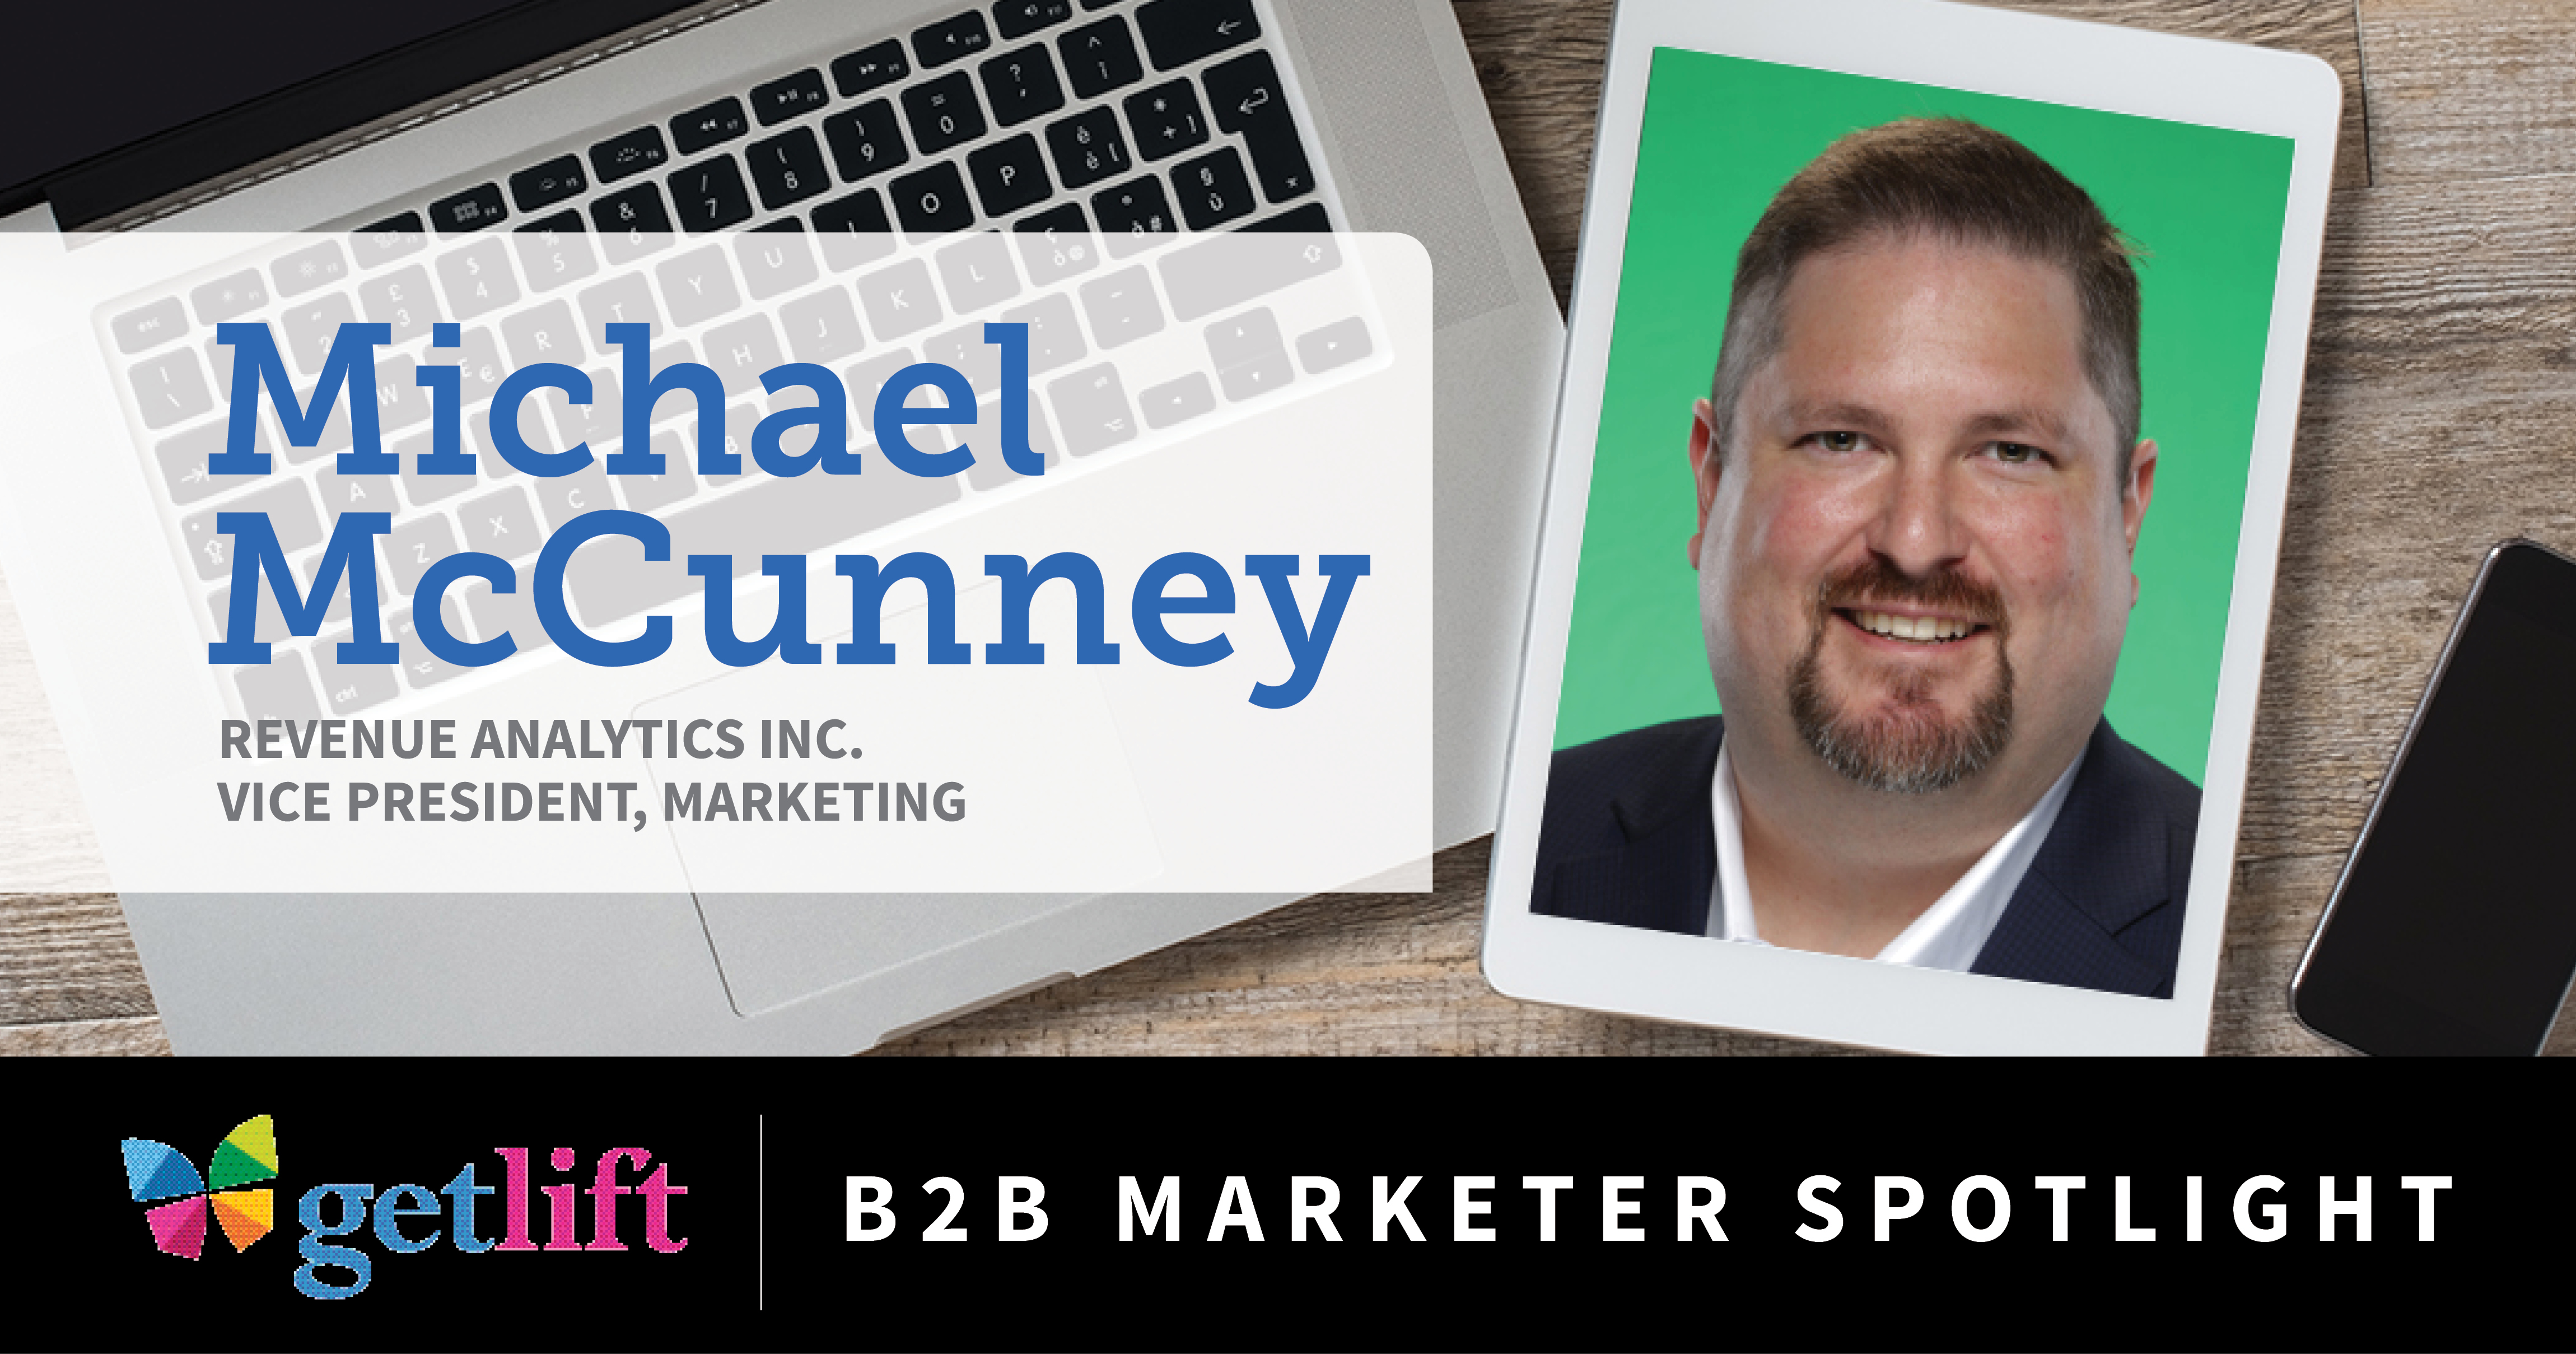 B2B Marketer Spotlight: Michael McCunney